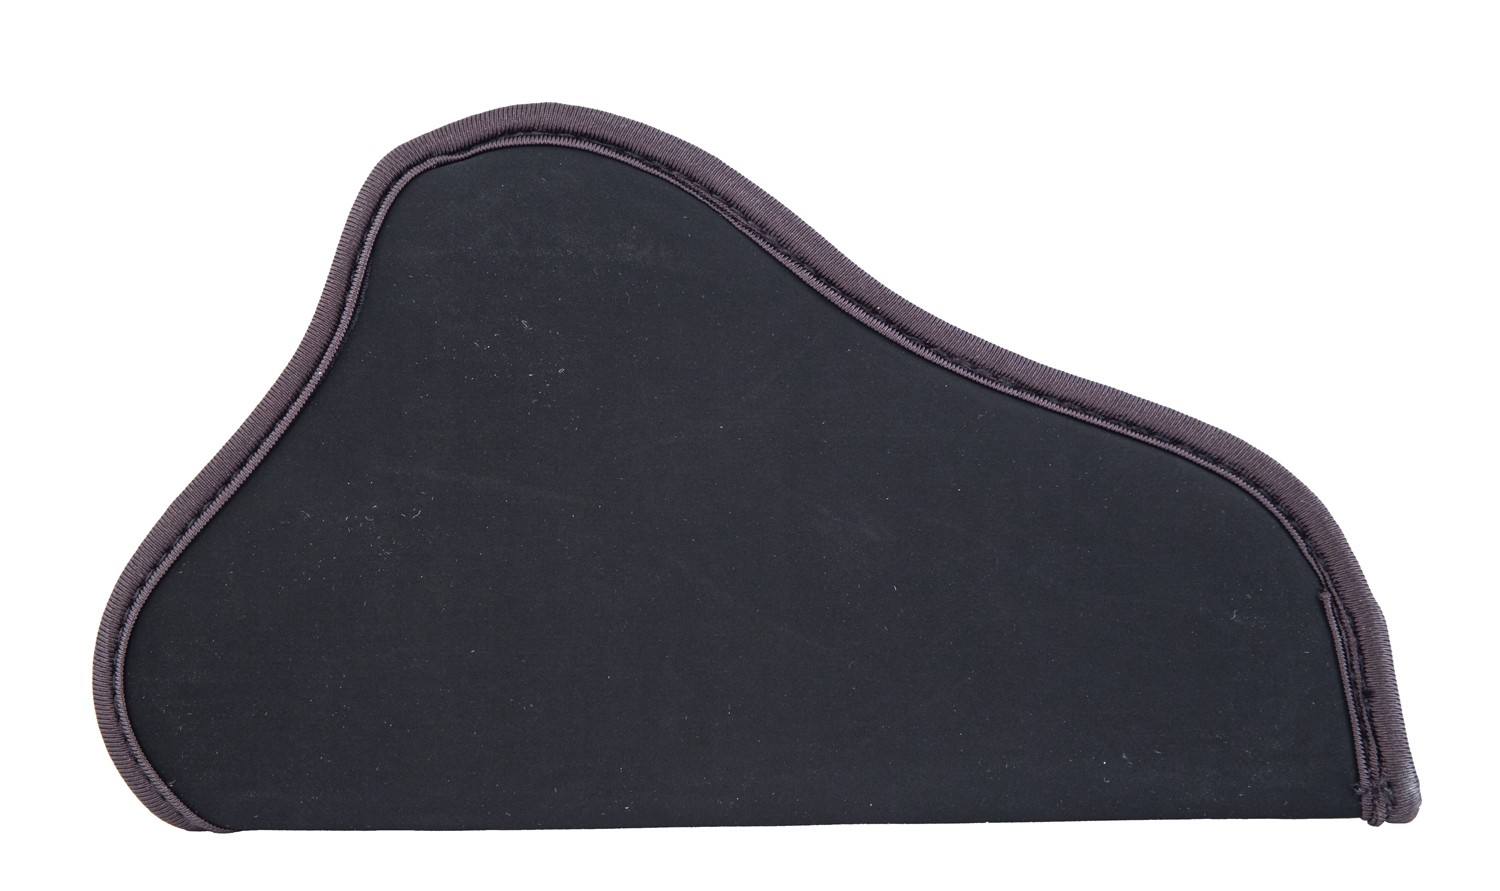 Caldwell Tac Ops Covert IWB Holster RH Small Autos .22-.25